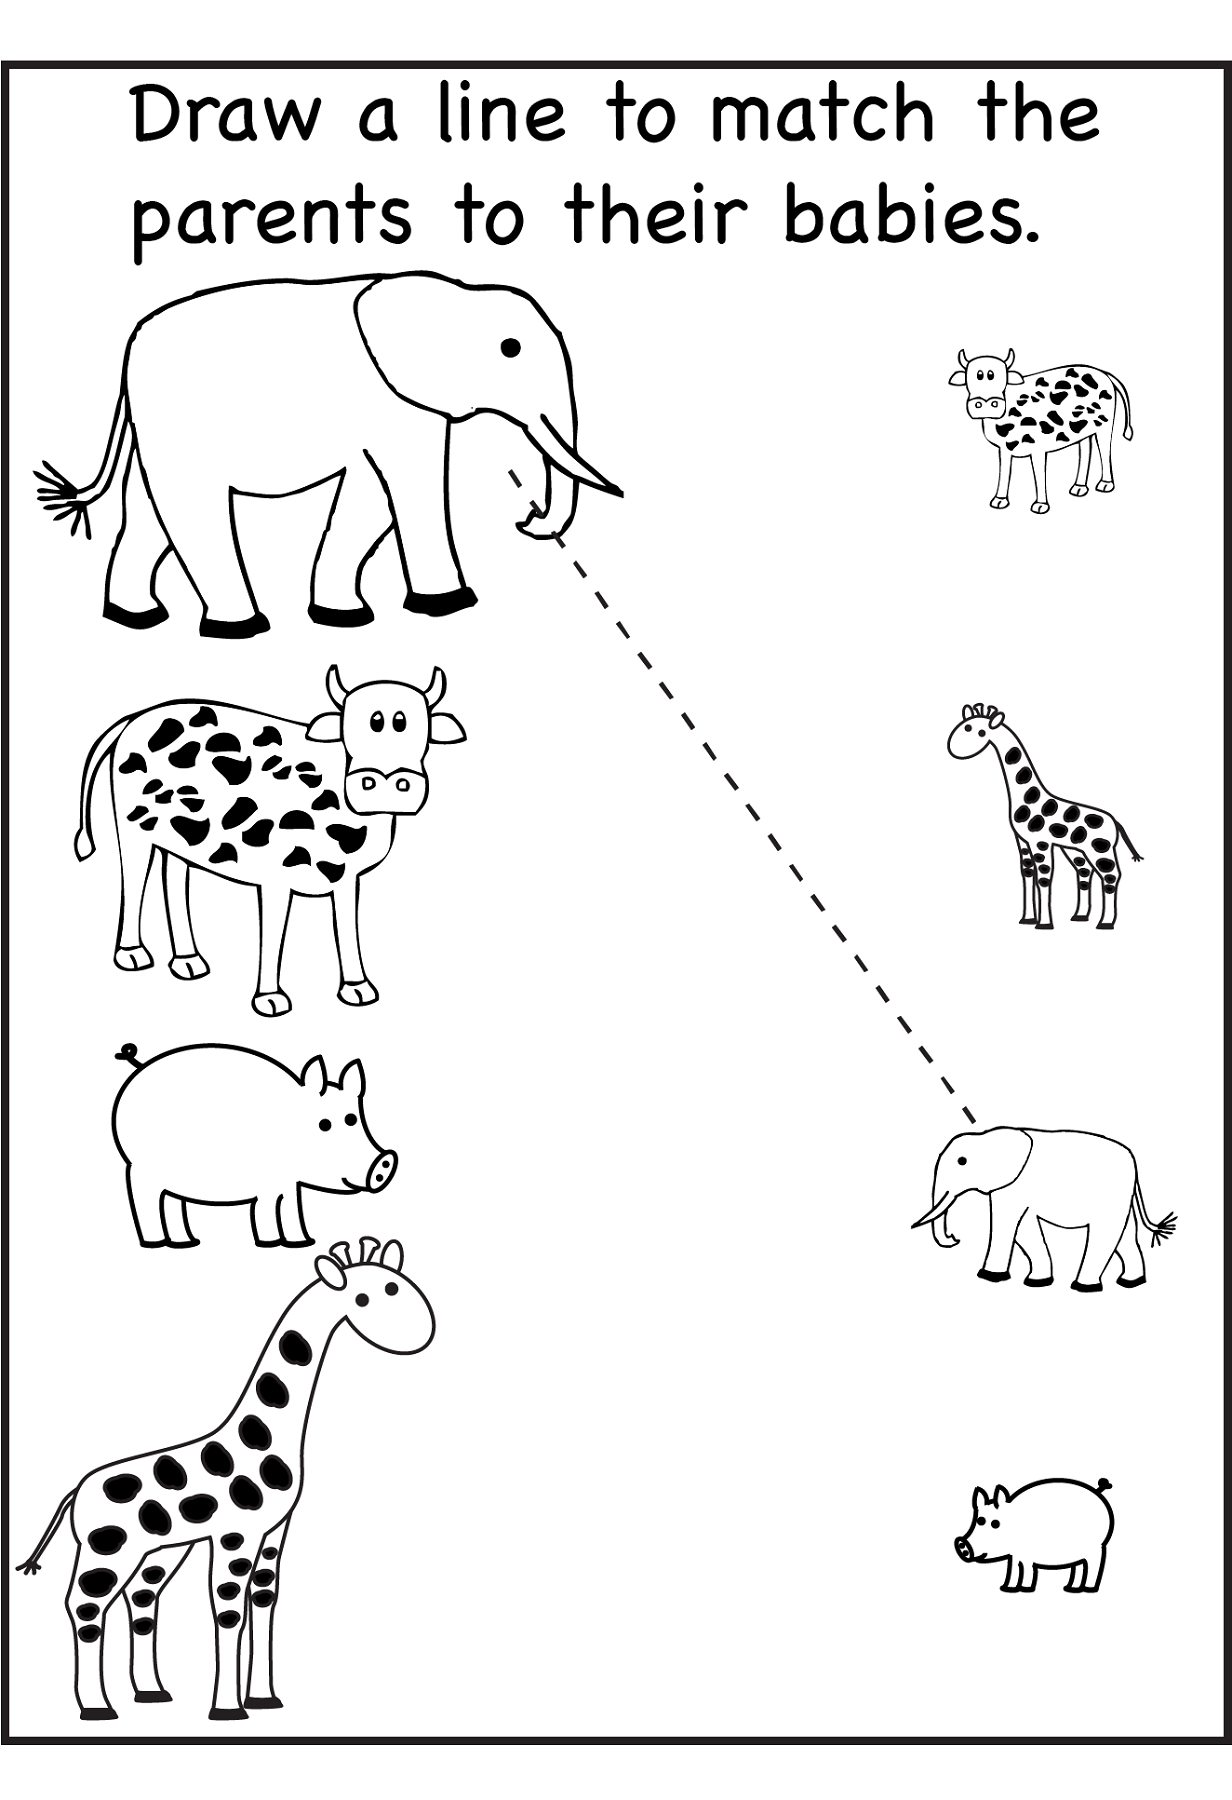 Printable Activity Sheets for Kids | Education | Preschool ...